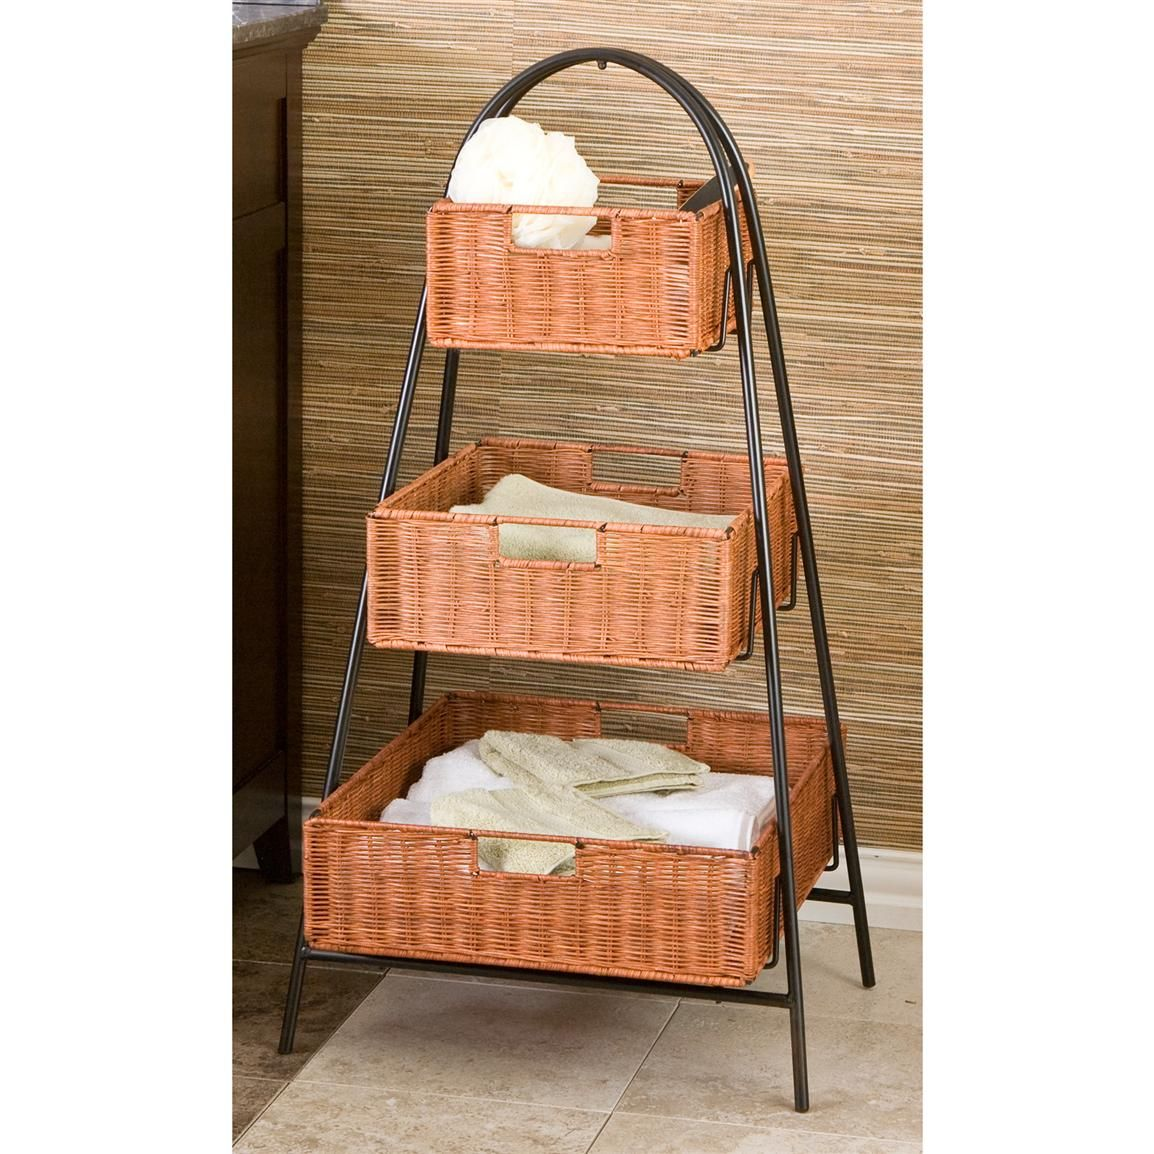 3 Tier Basket Stand With Images 3 Tier Basket Stand Tiered